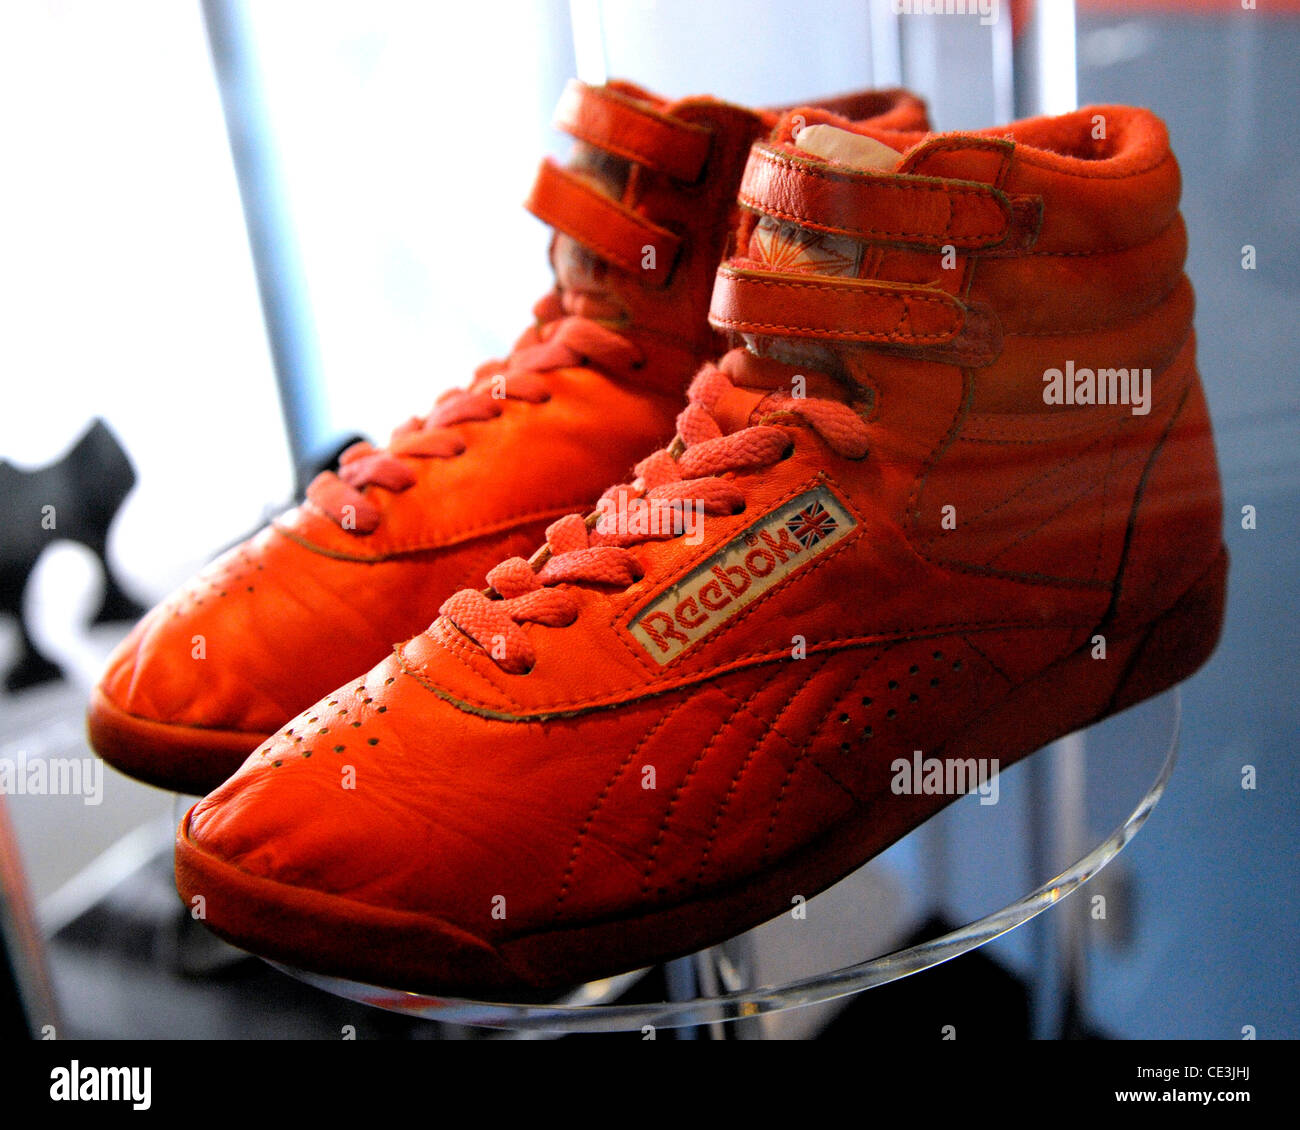 b53763ec Anne Murray's orange Reebok high-top sneakers from the 80's ...